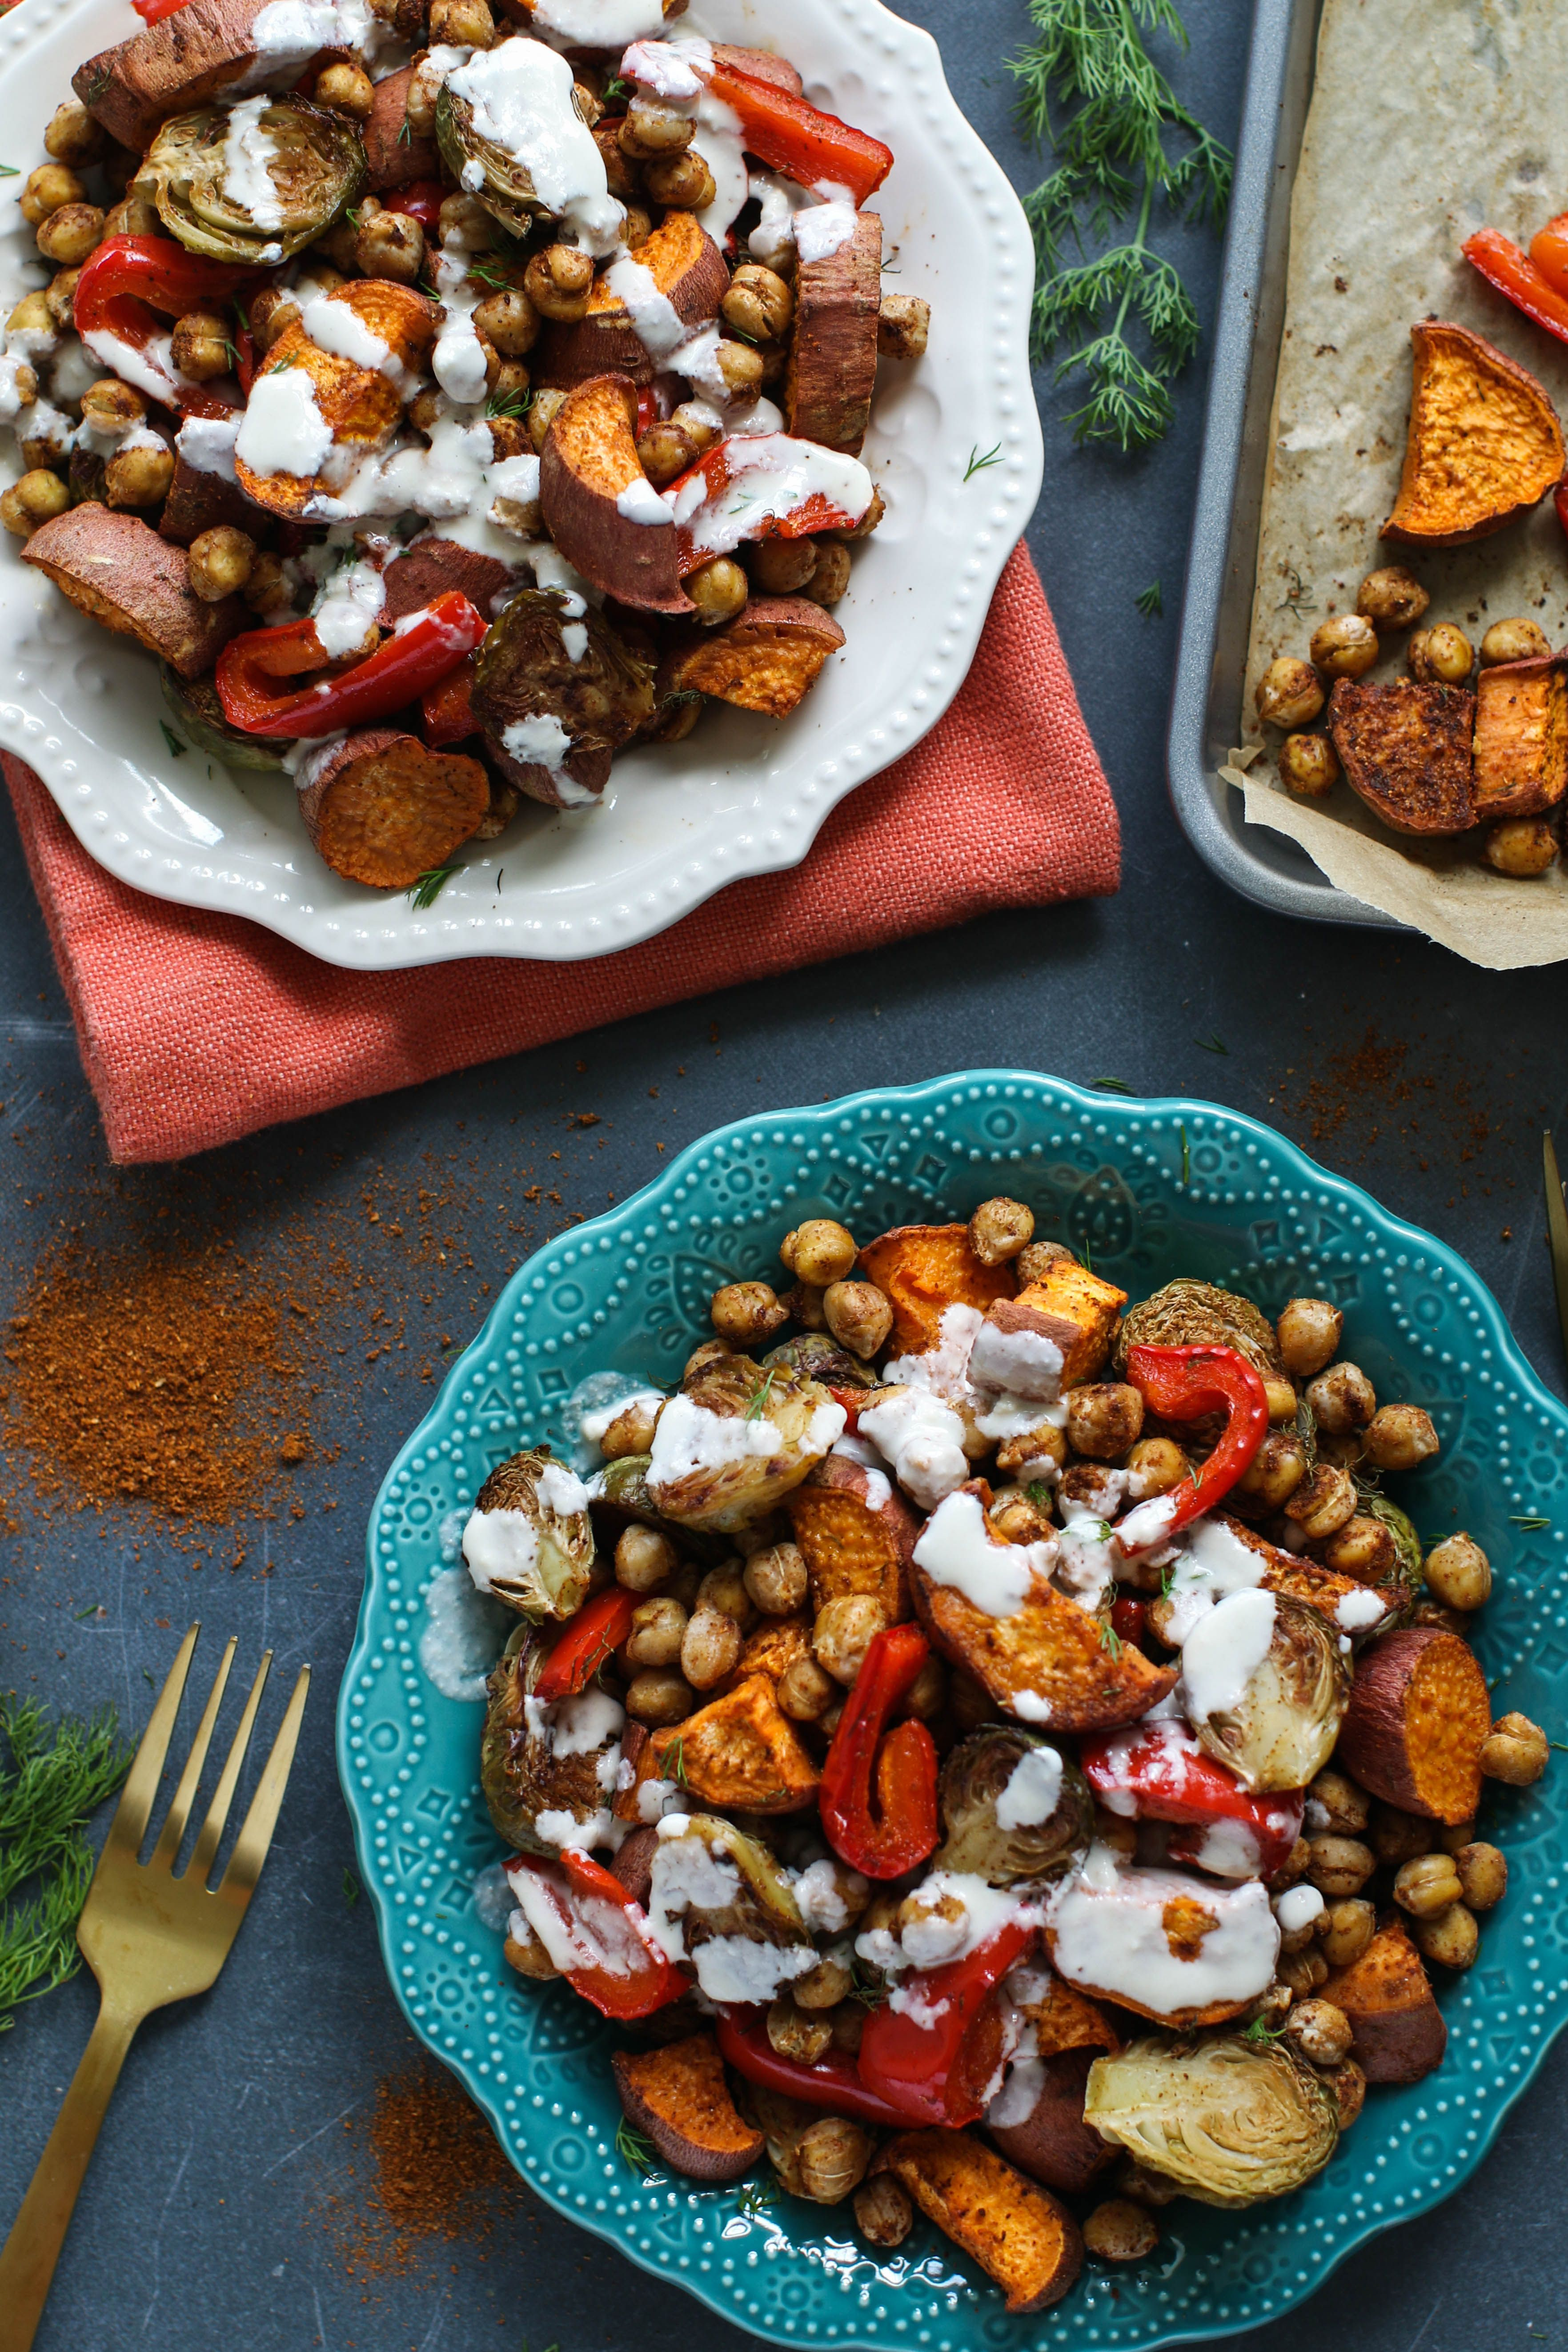 Roasted Sweet Potatoes Brussel Sprouts Chickpeas My Favorite Tray Dinner